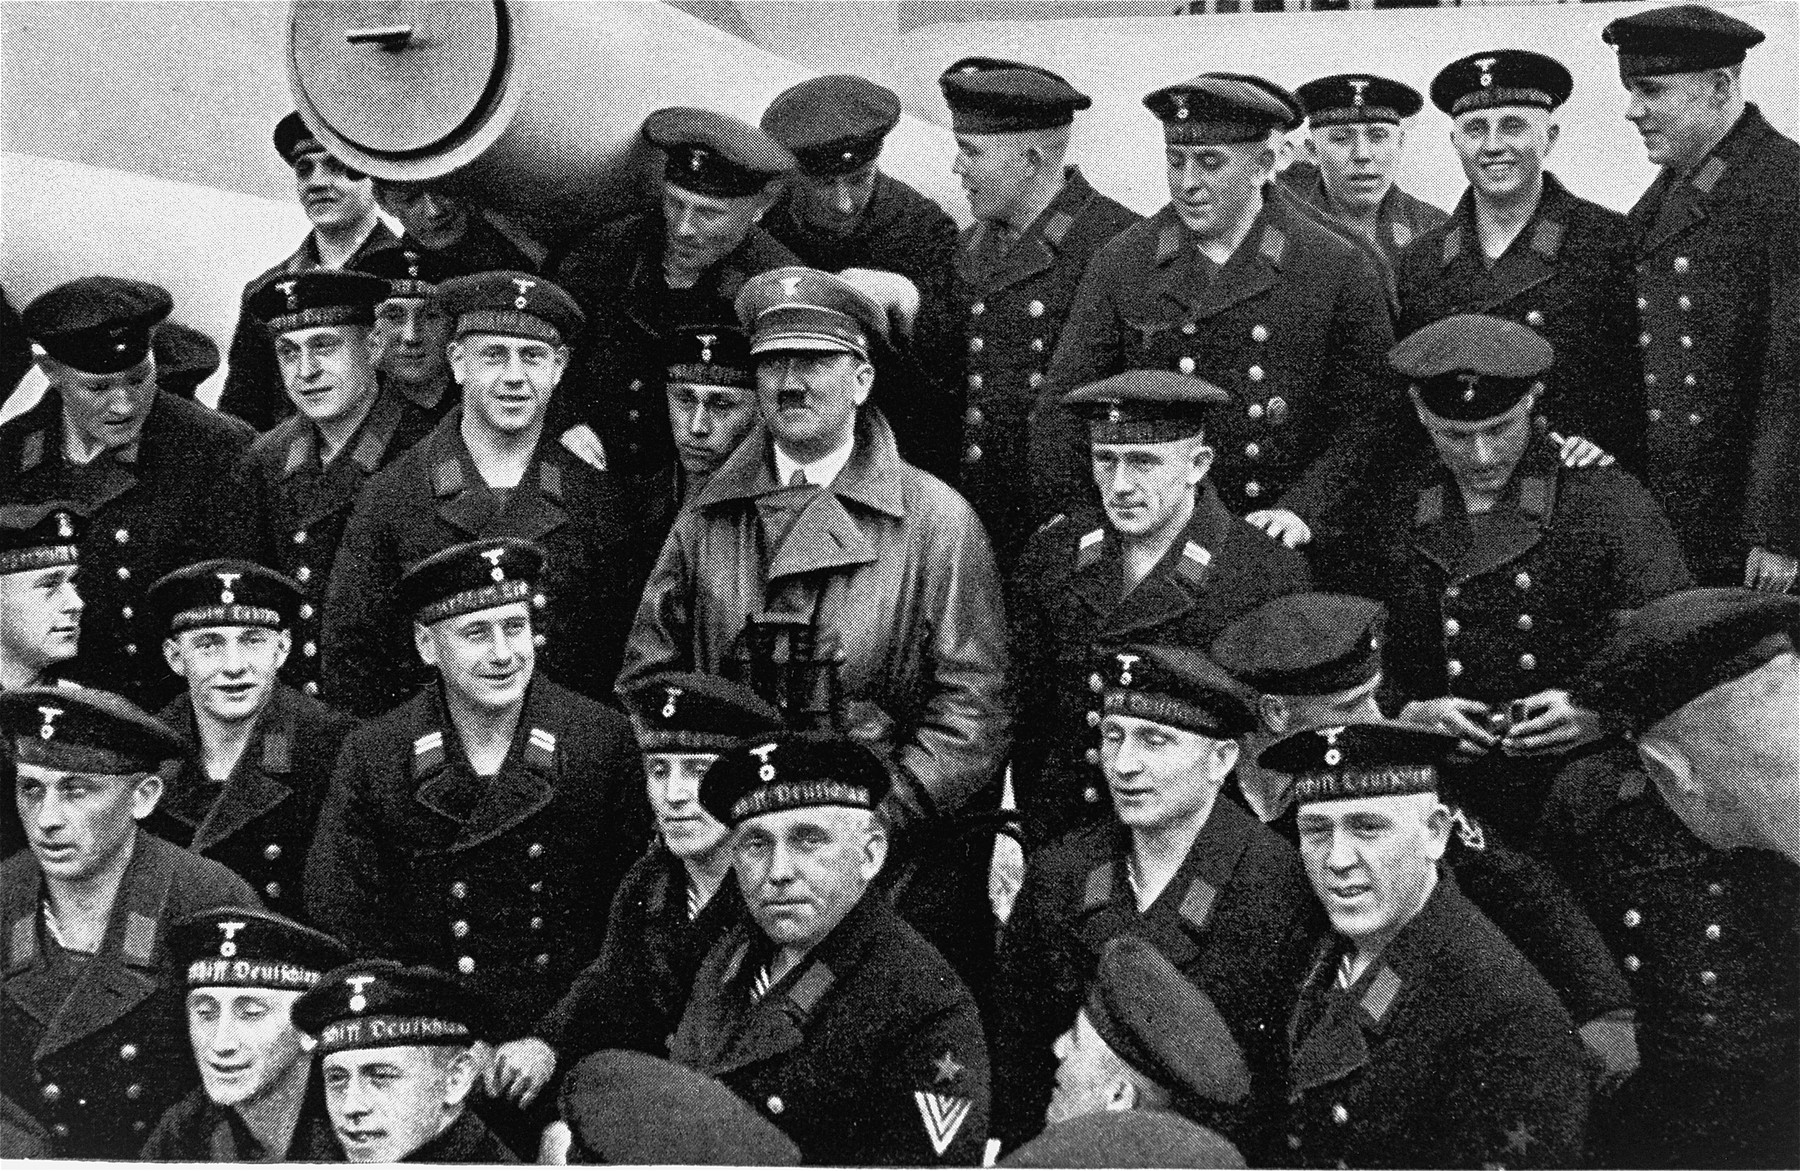 Adolf Hitler poses with a group of sailors aboard a German armored cruiser, the Deutschland.